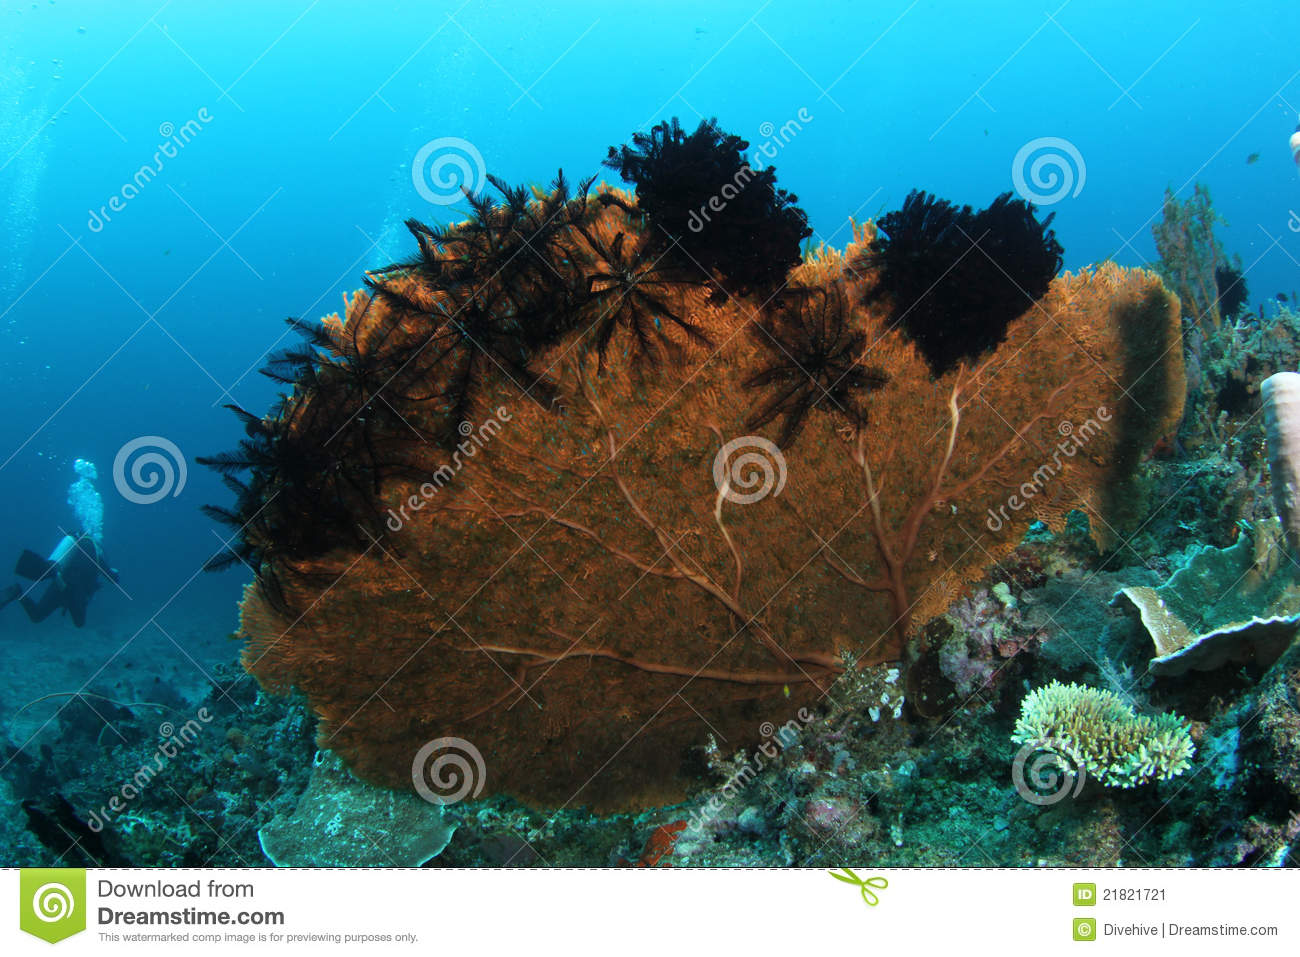 Big fan coral with feather stars